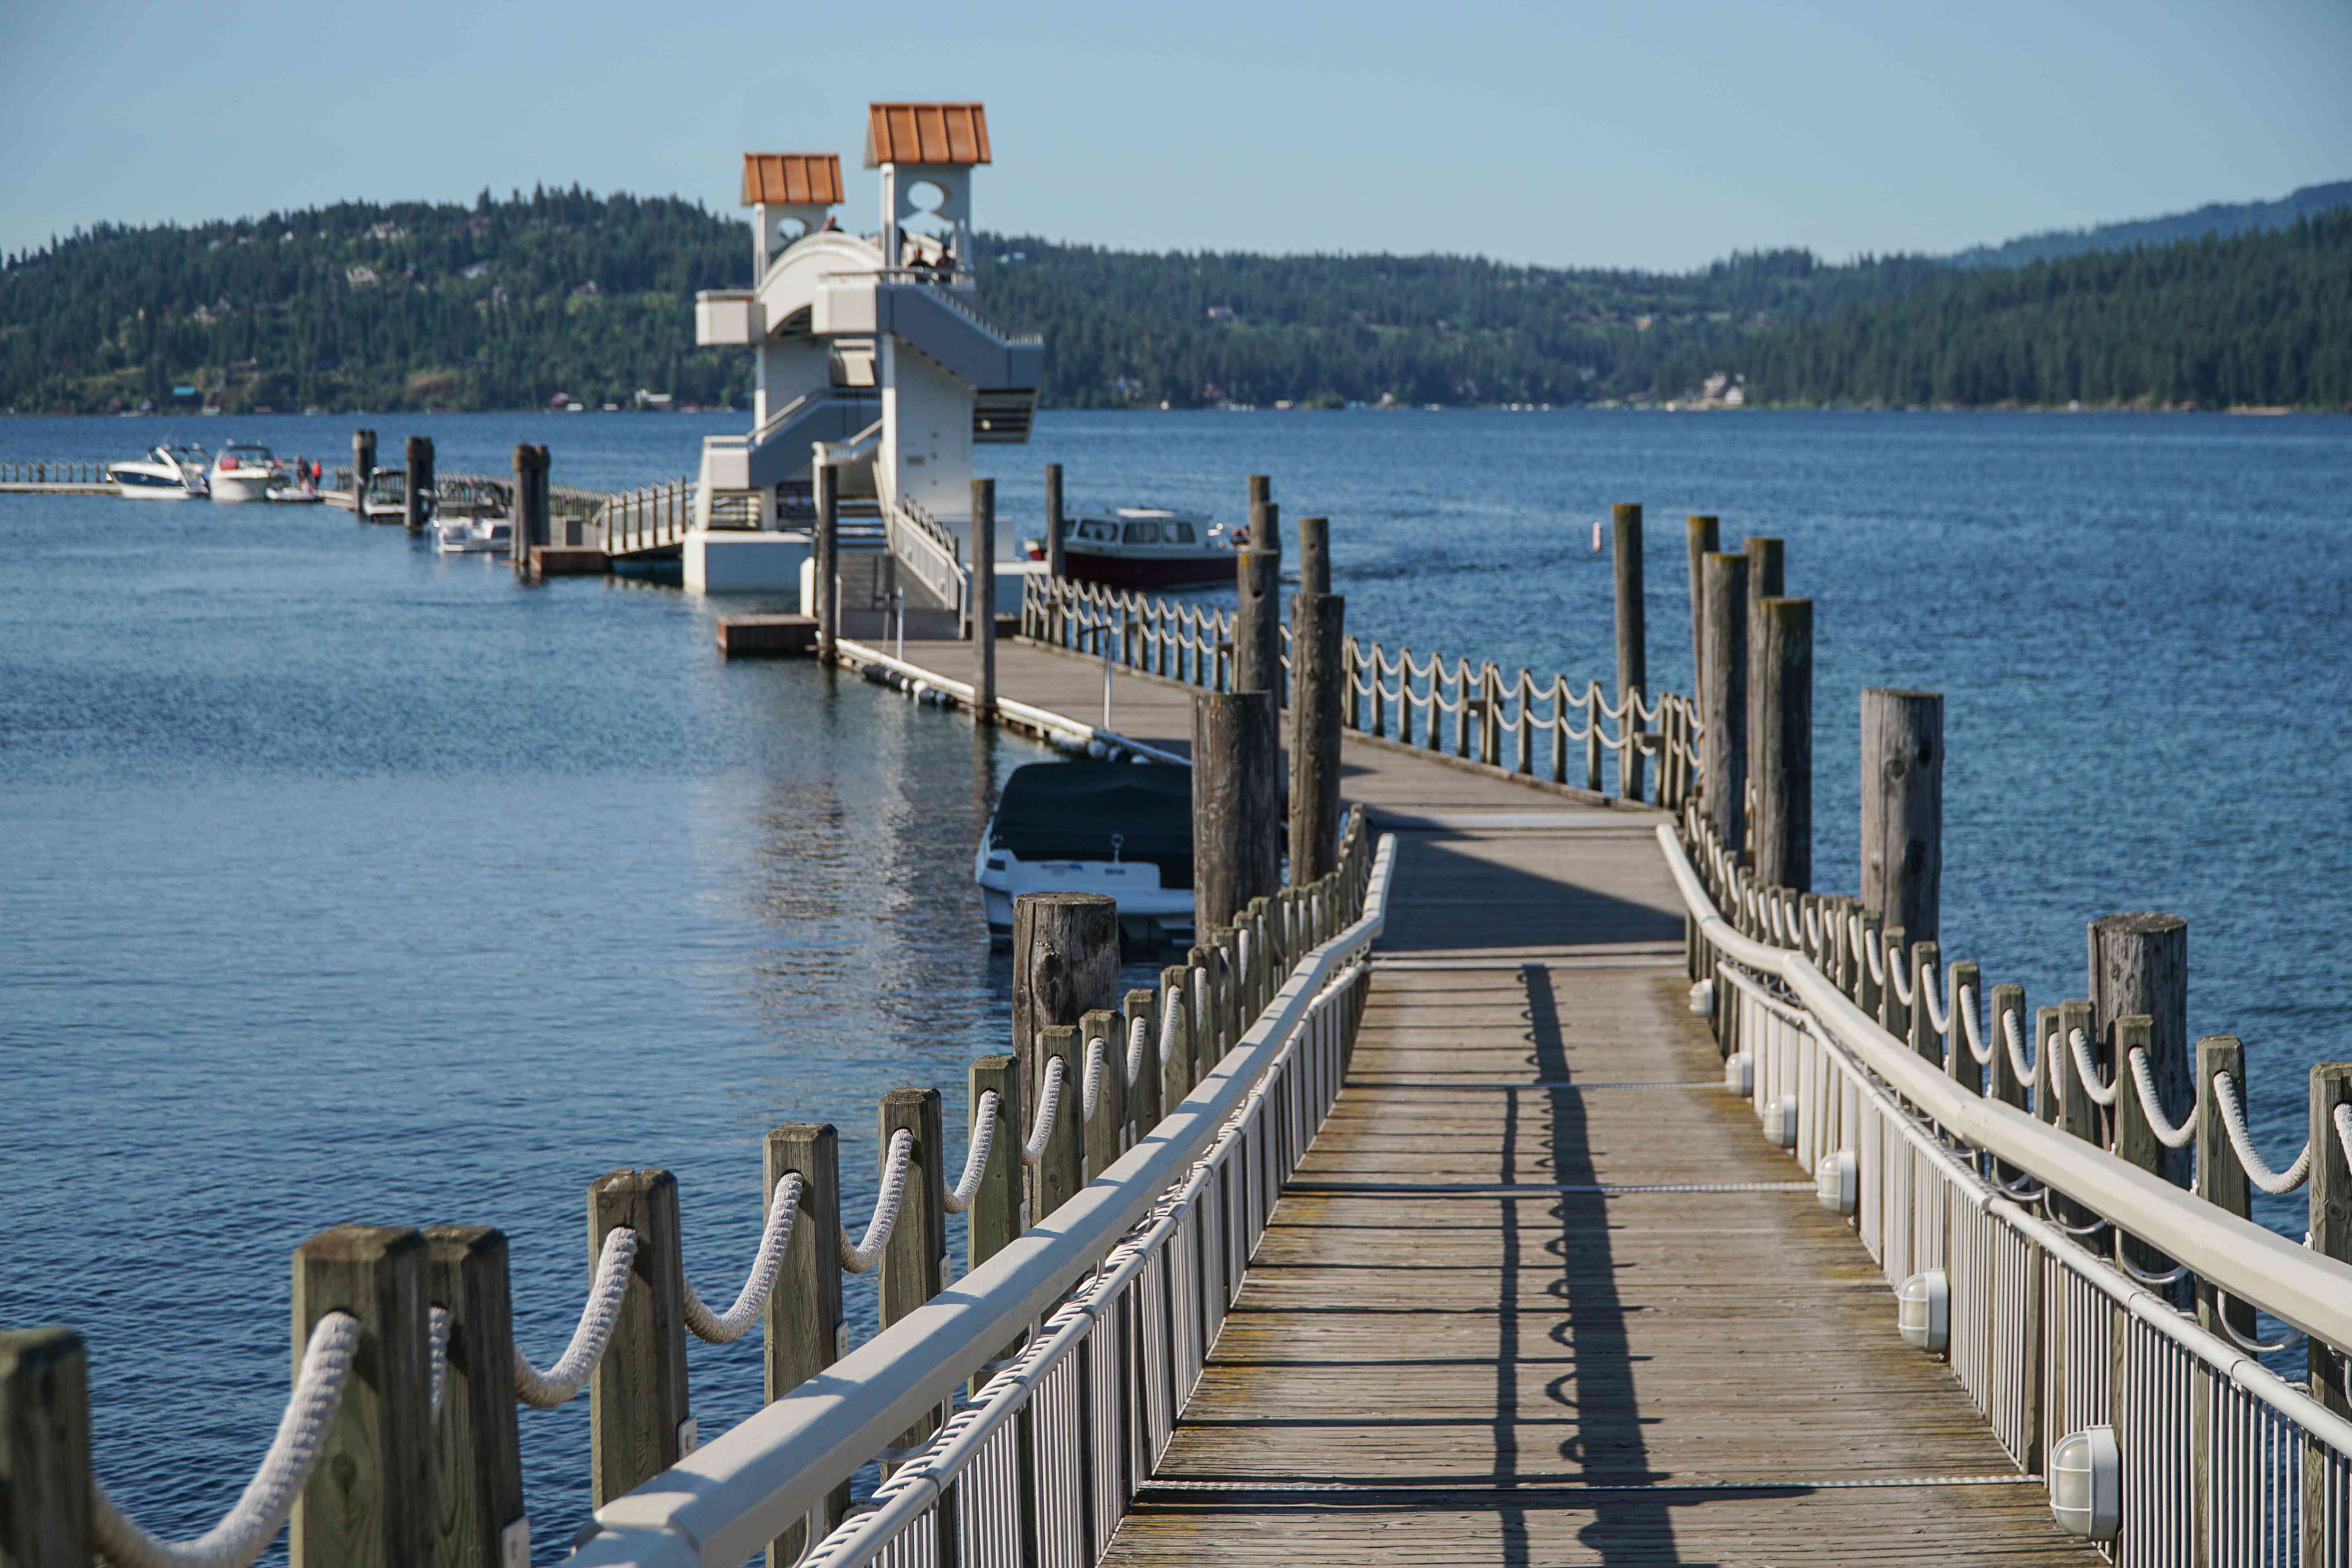 A pier out on to the lake in Coer d'Alene